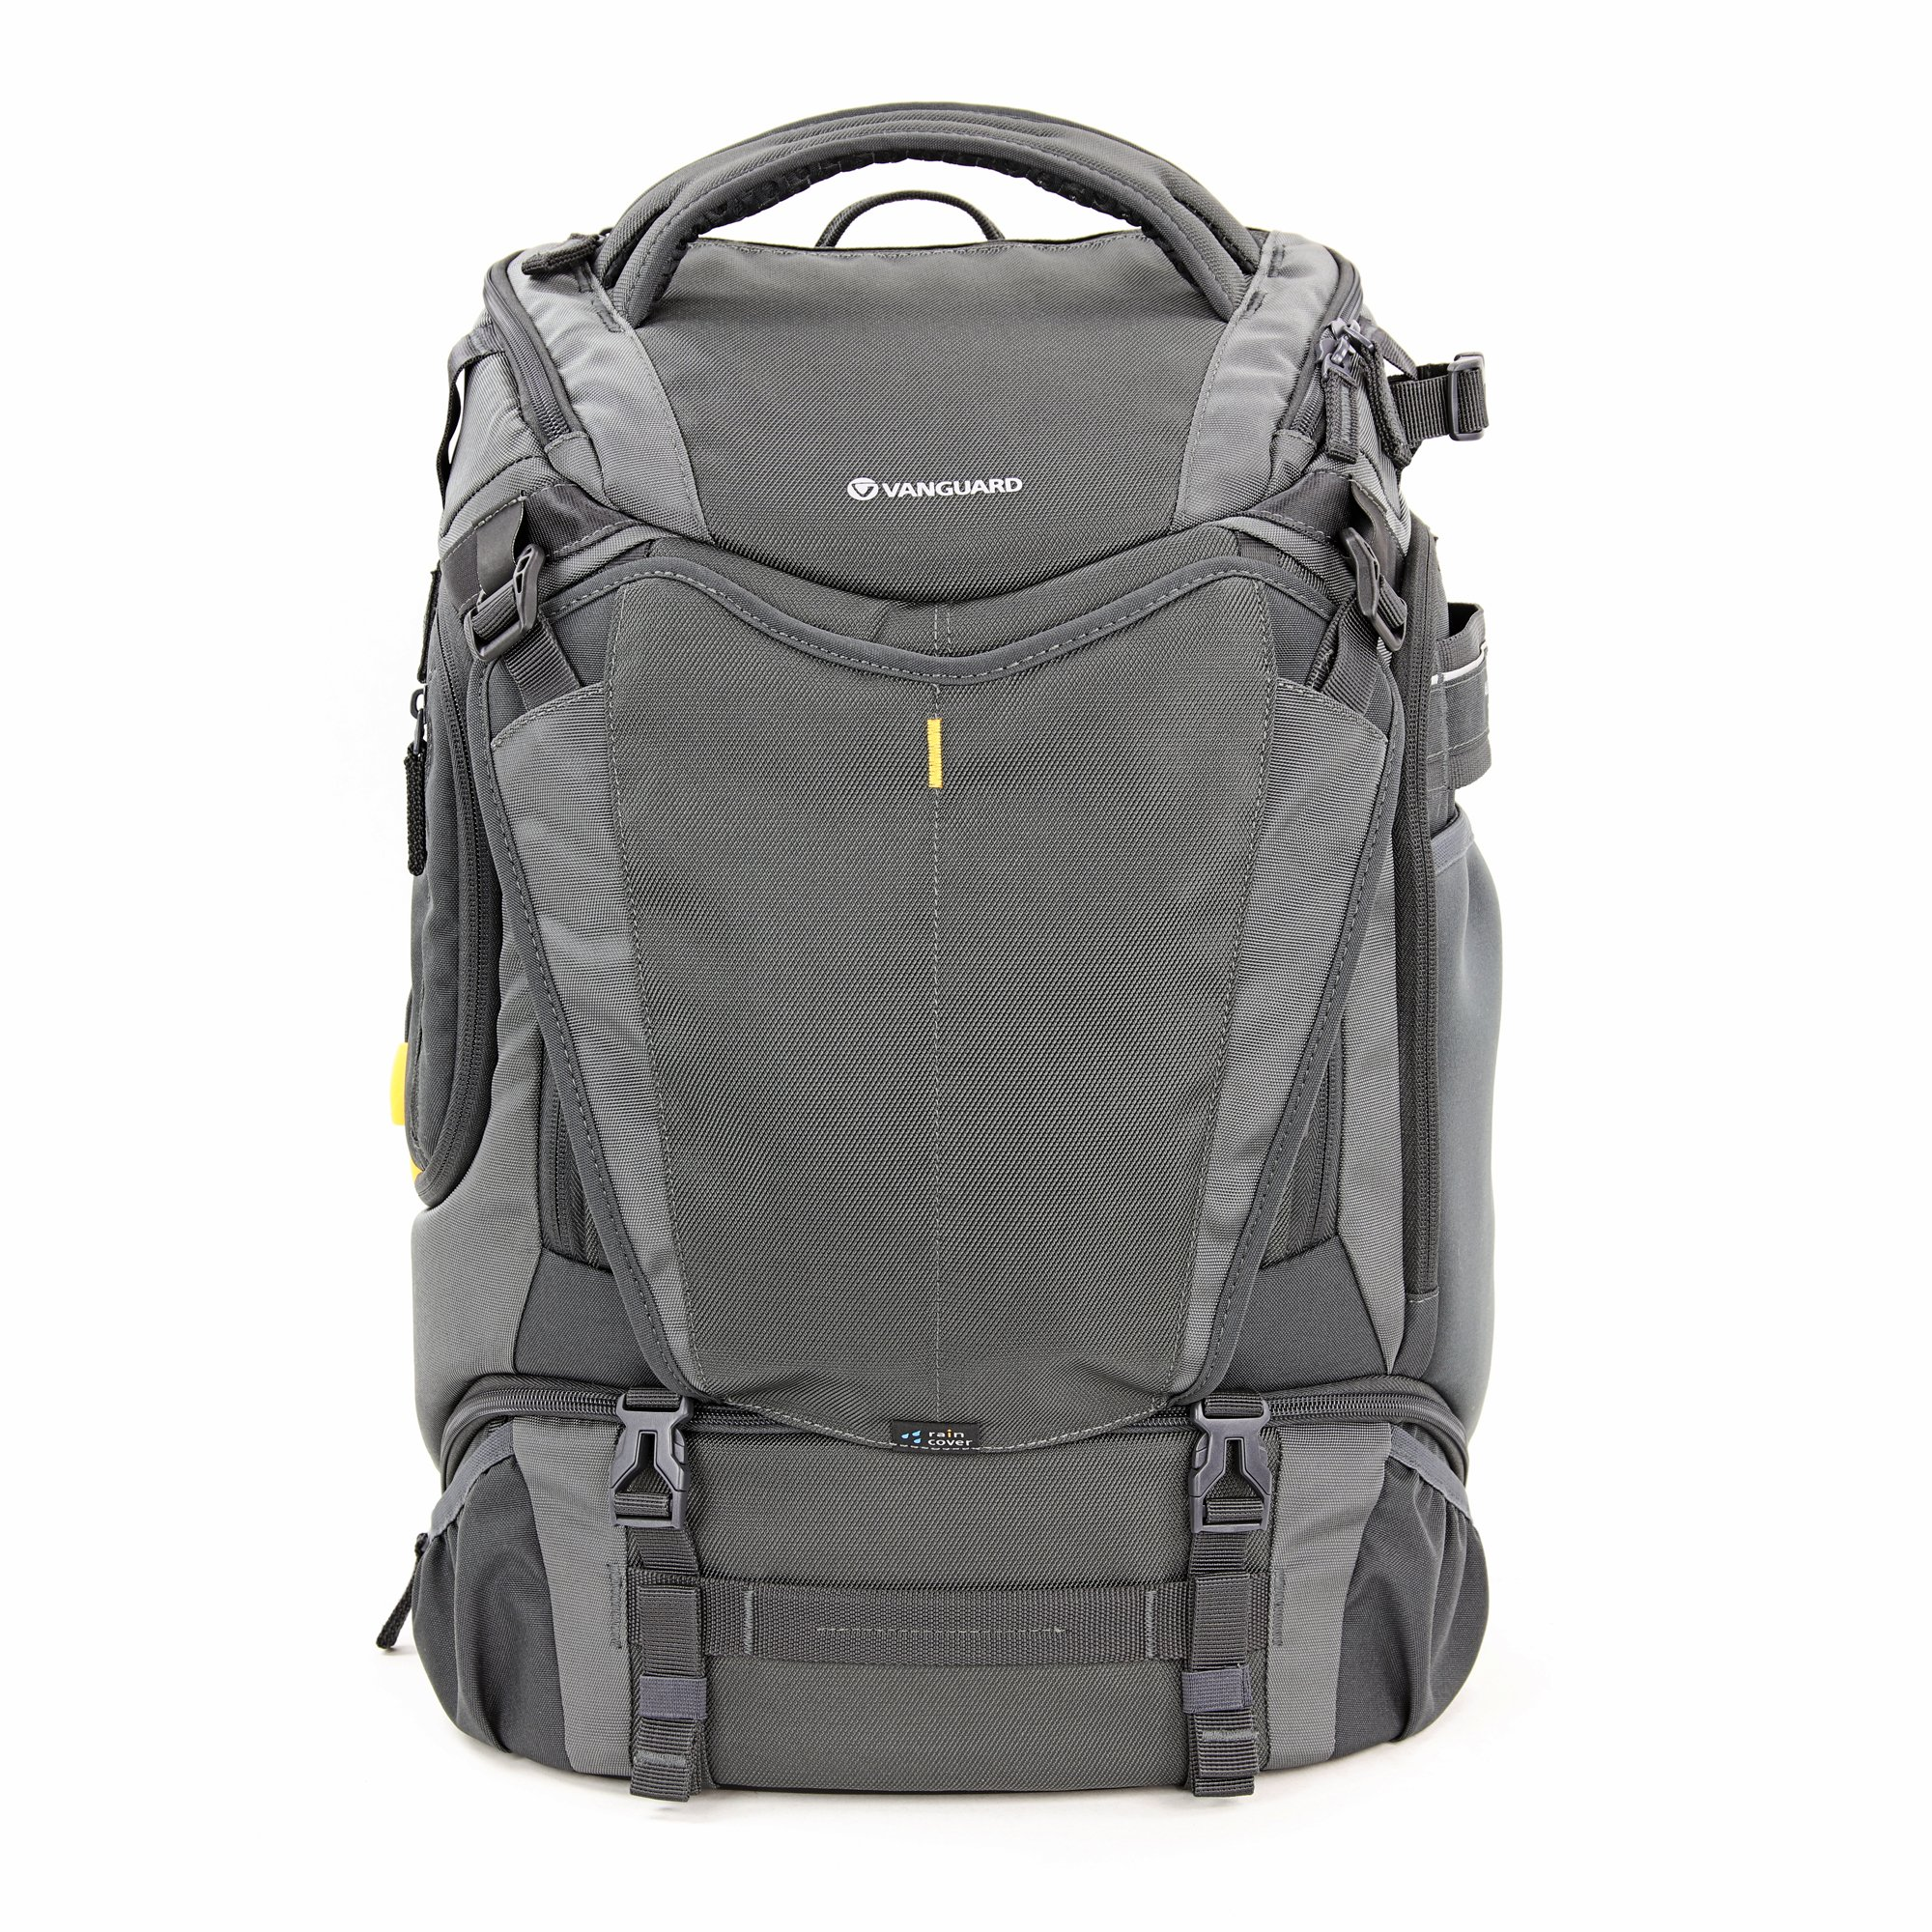 Vanguard Alta Sky 51D Camera Backpack for Sony, Nikon, Canon, DSLR, Drones by Vanguard